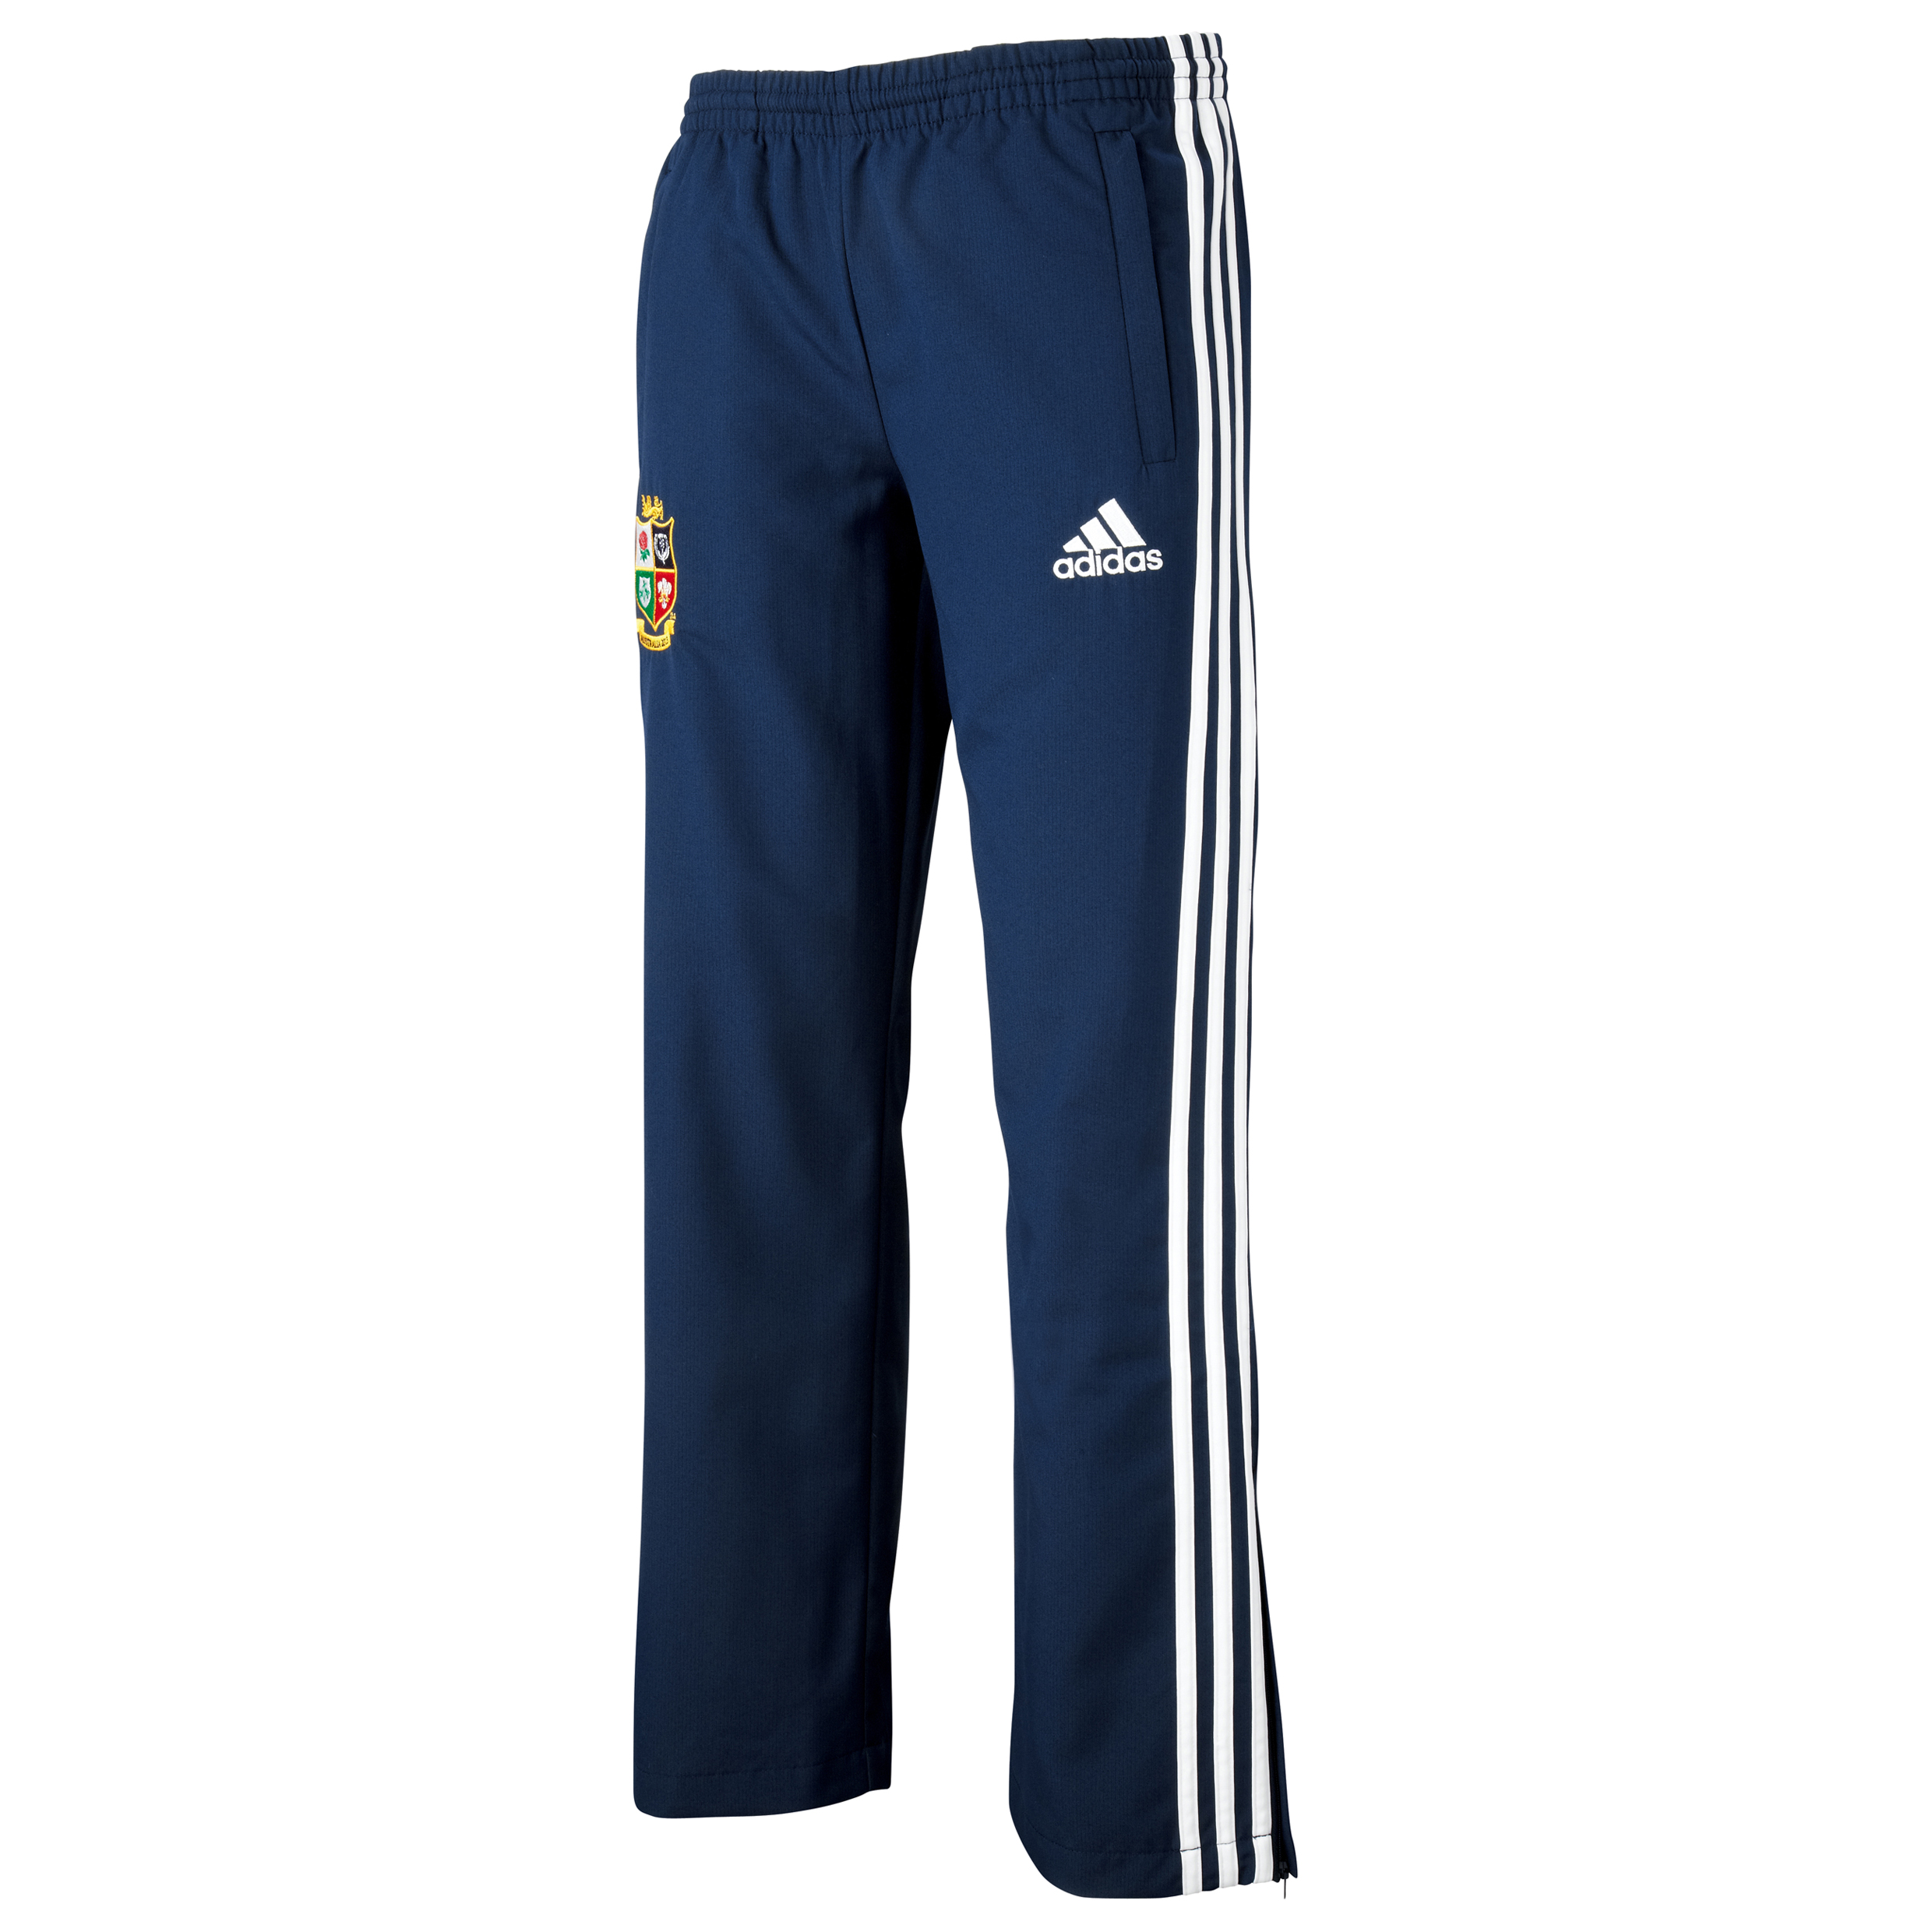 adidas British and Irish Lions Presentation Pants - Collegiate Navy/White - Youths